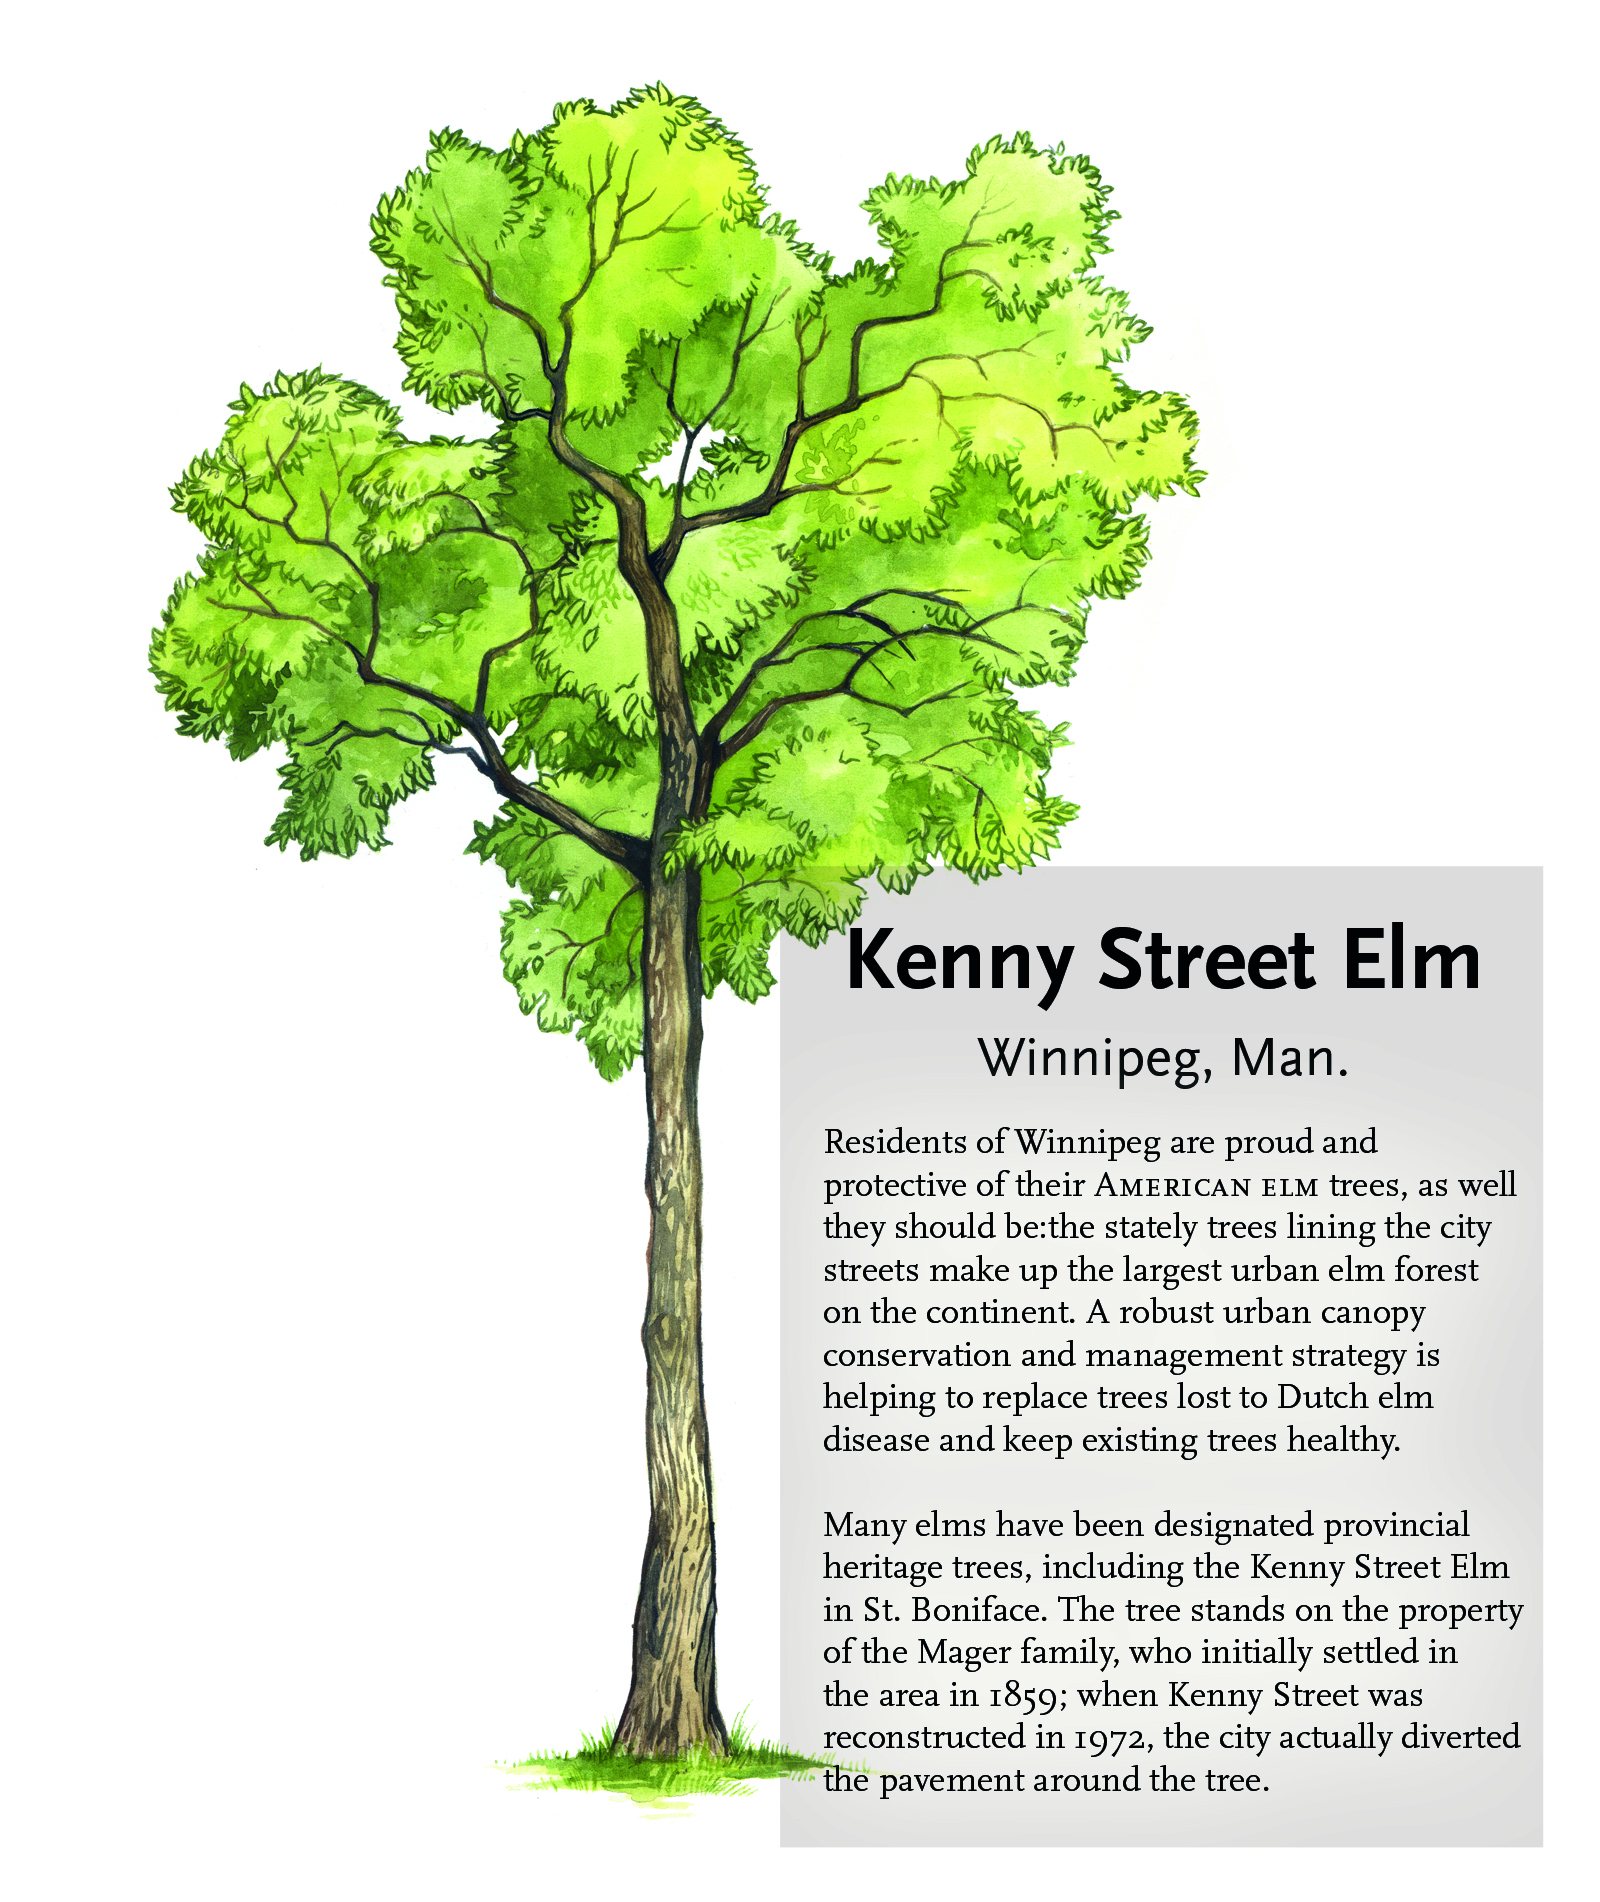 Kenny Street Elm illustration